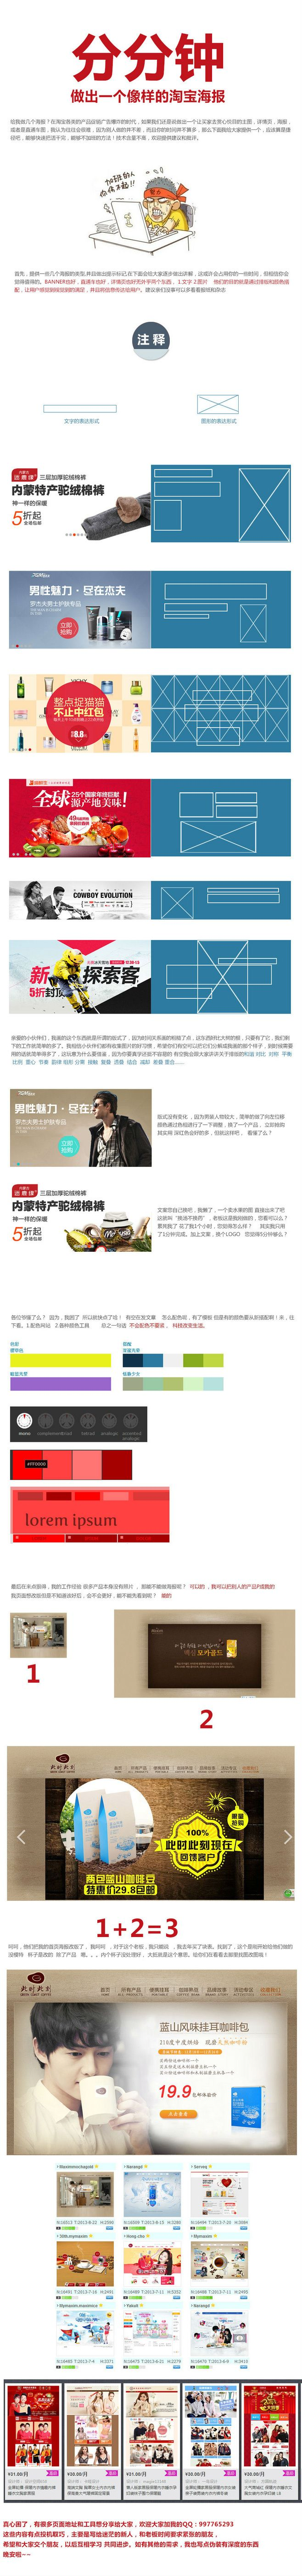 Every minute - get Taobao main map, posters, details page, home ...